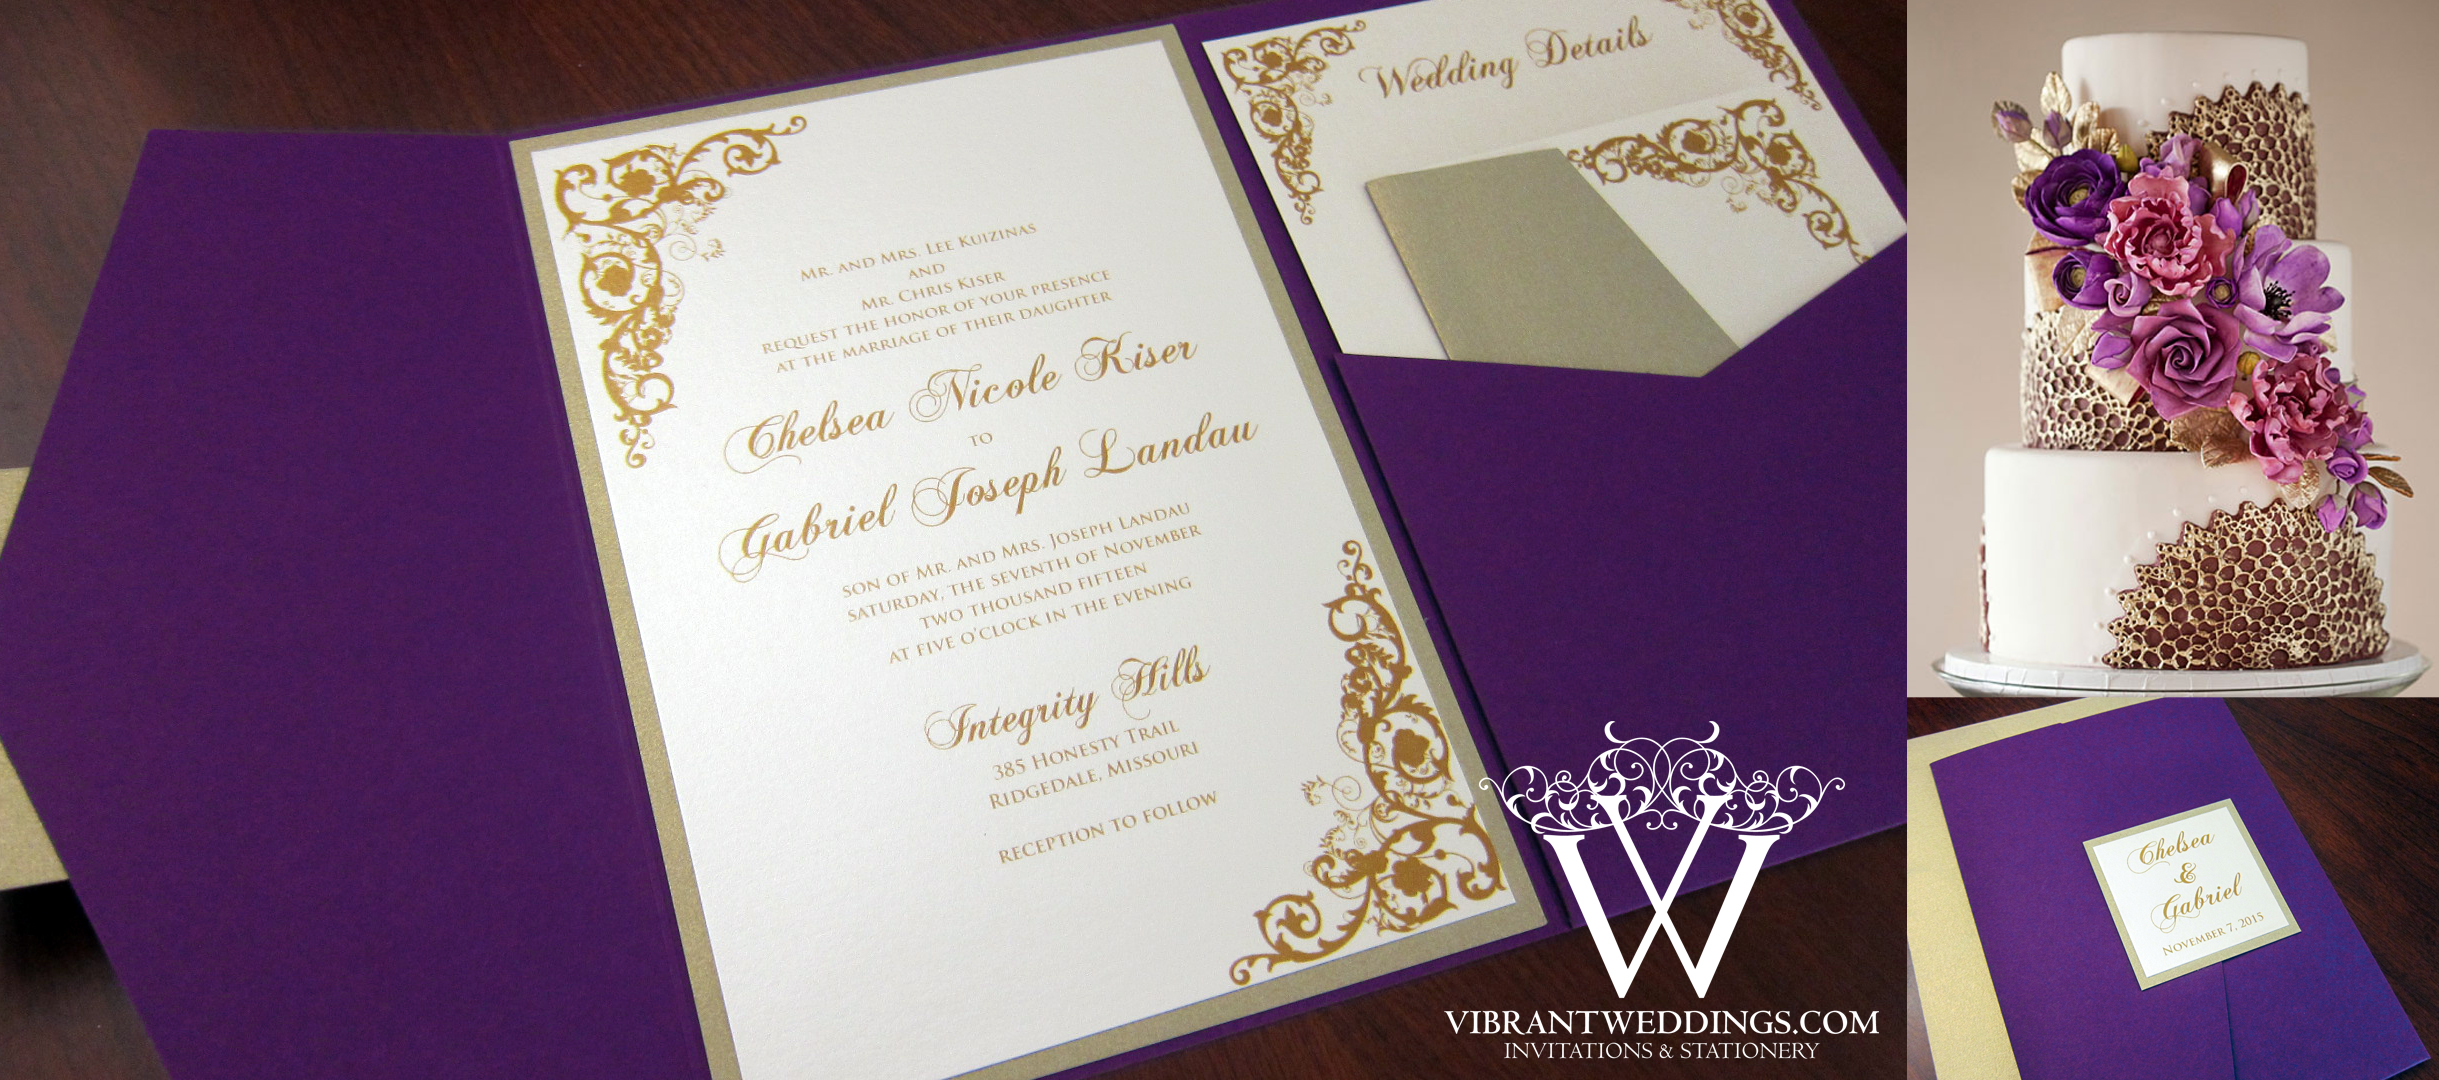 Purple and Gold Wedding Invitation – A Vibrant Wedding